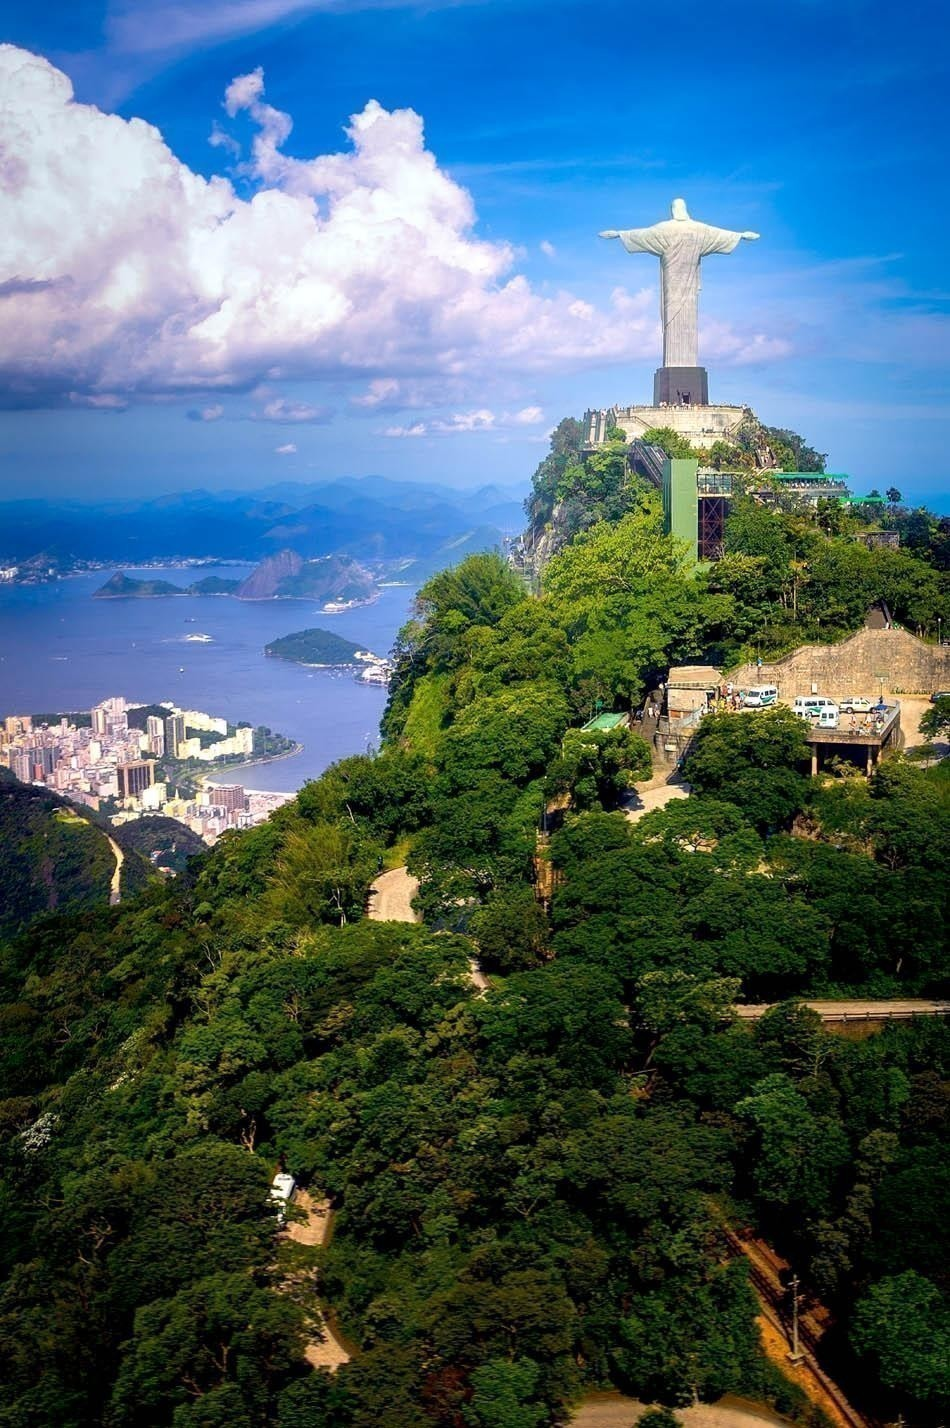 Christ the Redeemer statue on the top of a mountain, Rio De Janeiro | Brazil Travel Guide